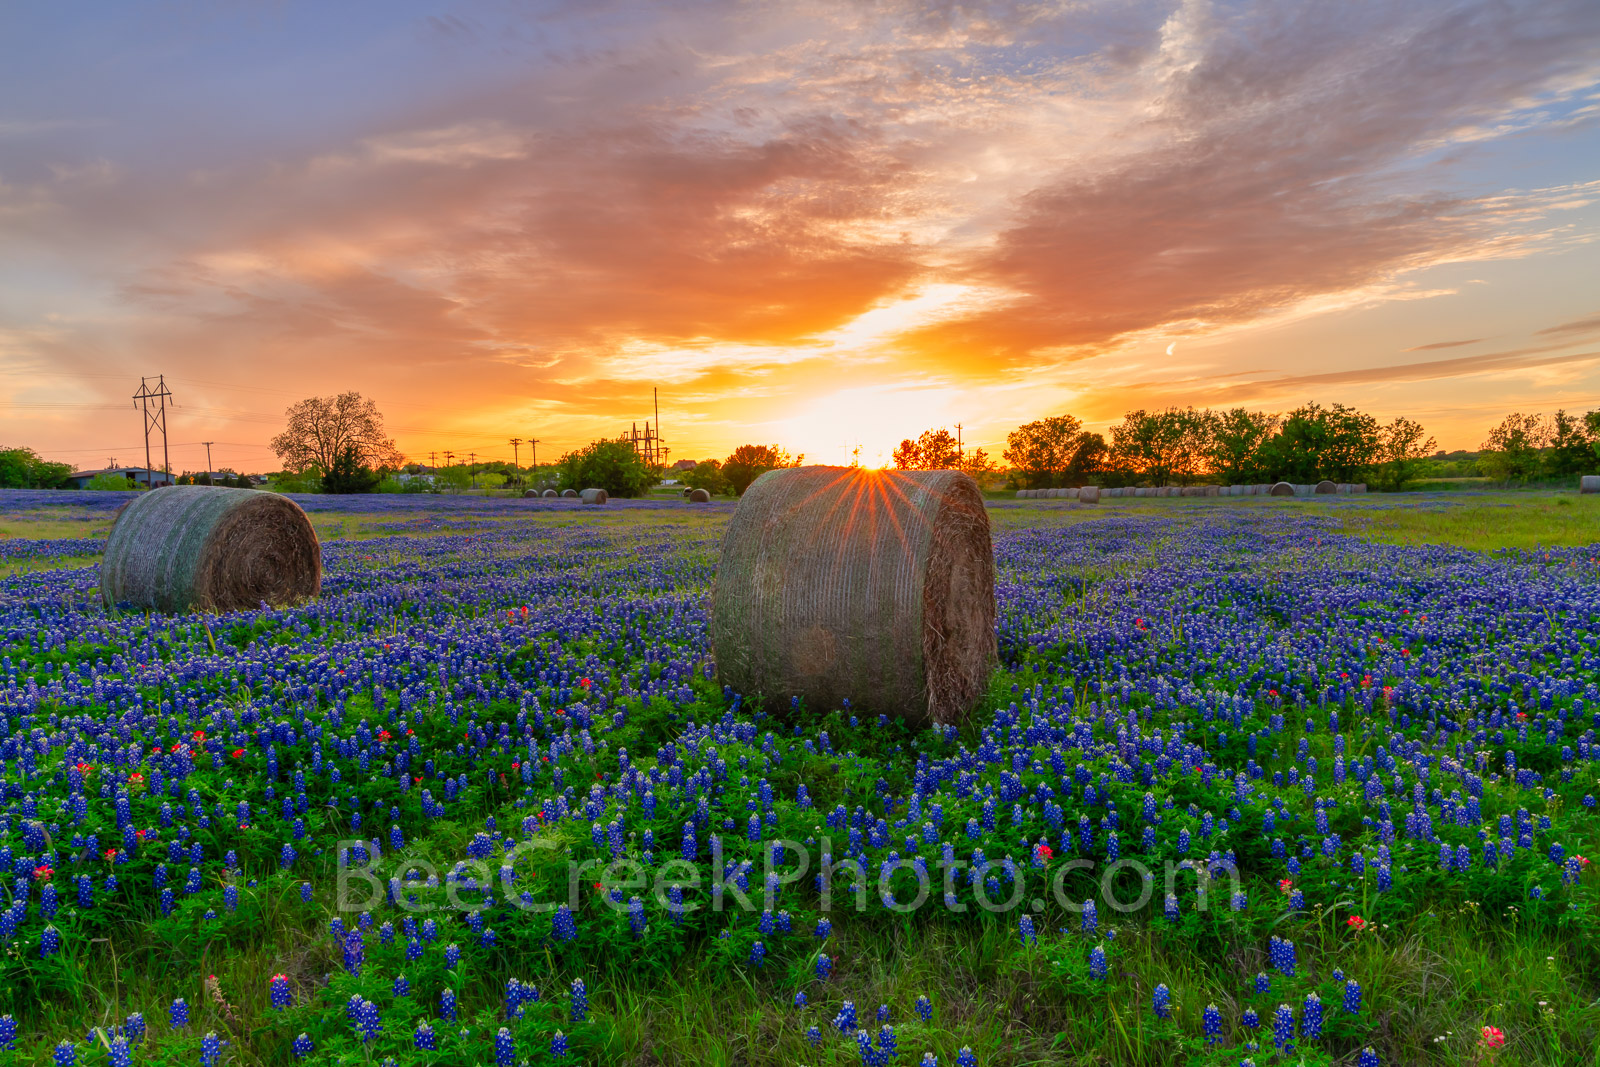 Texas bluebonnet, sunset, hay bales, sunset colored sky, sun rays, rural, wildflowers,, photo